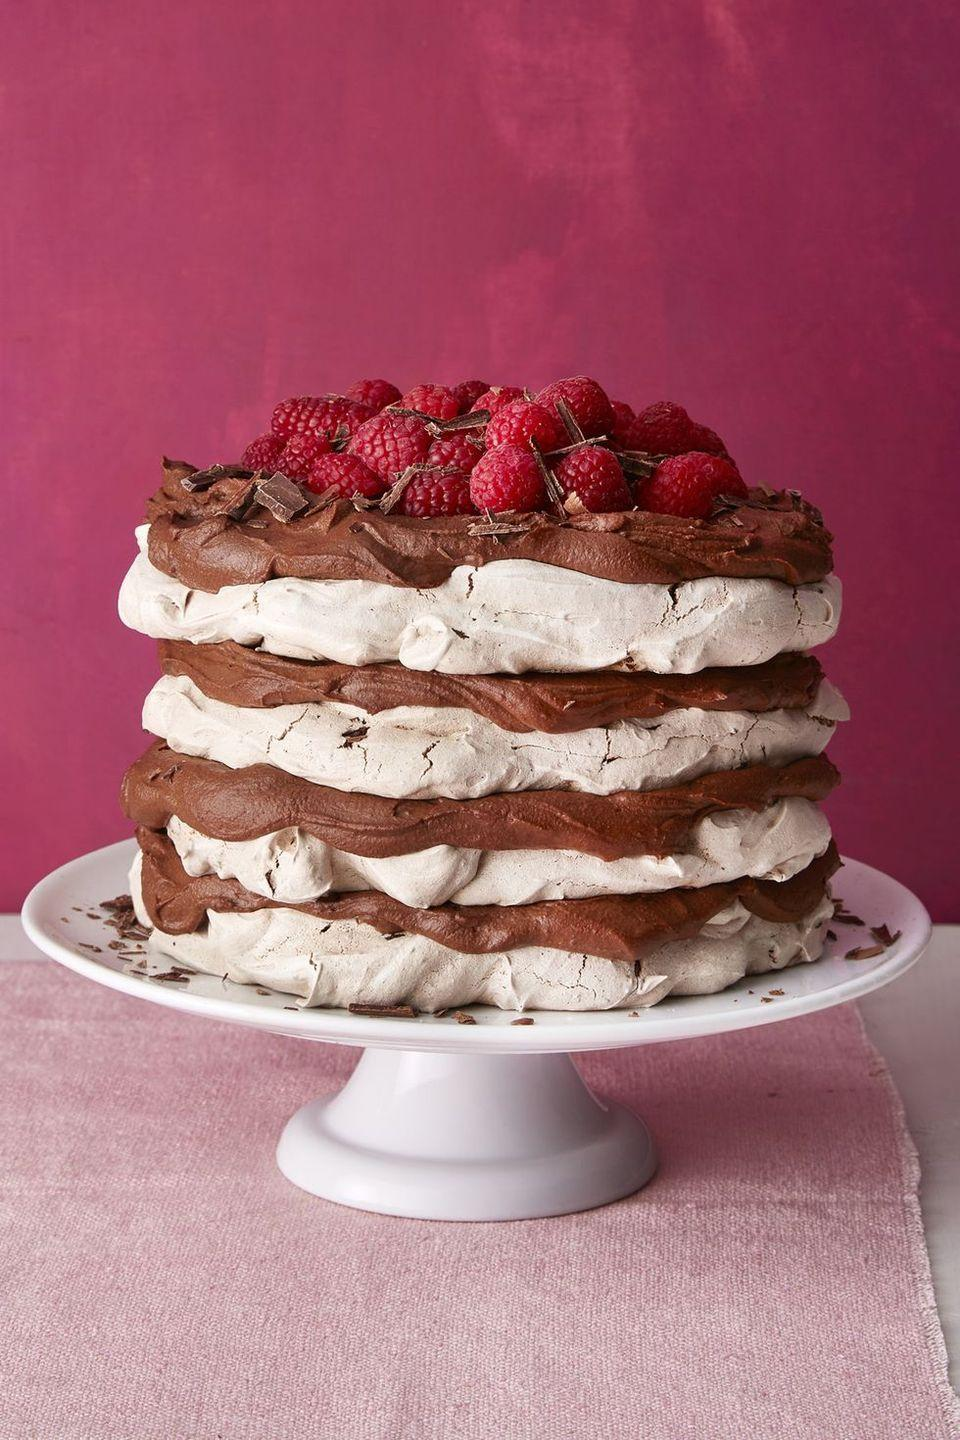 """<p>Top this light, chocolate meringue cake with fresh berries for the ultimate flavor combination. </p><p><a class=""""link rapid-noclick-resp"""" href=""""https://www.amazon.com/OXO-Good-Grips-8-Inch-Strainer/dp/B00004OCLX?tag=syn-yahoo-20&ascsubtag=%5Bartid%7C10055.g.19841885%5Bsrc%7Cyahoo-us"""" rel=""""nofollow noopener"""" target=""""_blank"""" data-ylk=""""slk:SHOP FINE MESH STRAINERS"""">SHOP FINE MESH STRAINERS</a></p><p><em><a href=""""https://www.womansday.com/food-recipes/food-drinks/a19124220/chocolate-meringue-layer-cake-recipe/"""" rel=""""nofollow noopener"""" target=""""_blank"""" data-ylk=""""slk:Get the recipe from Woman's Day »"""" class=""""link rapid-noclick-resp"""">Get the recipe from Woman's Day »</a></em> </p>"""